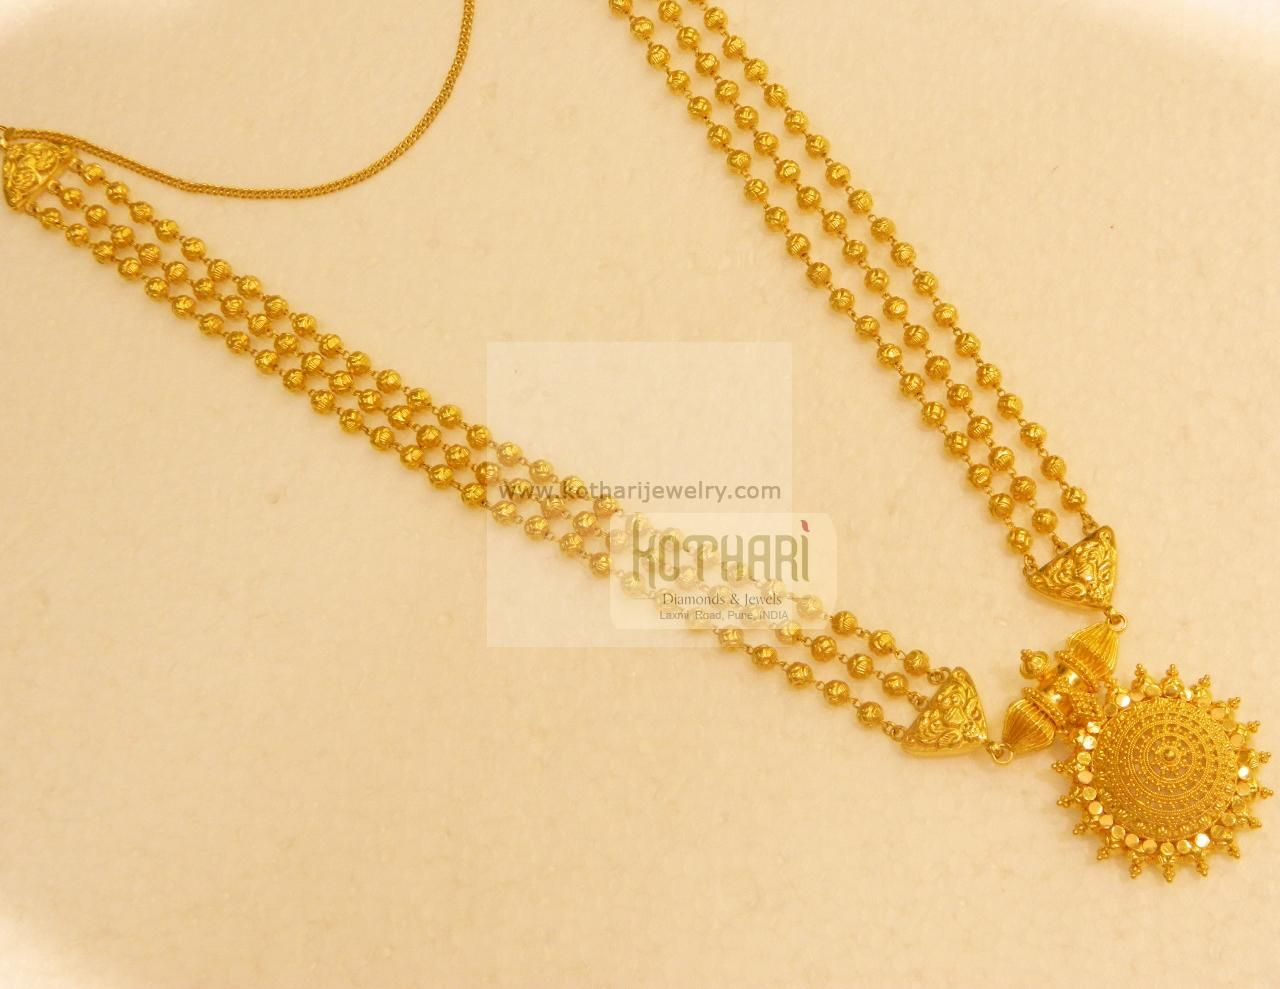 Necklaces / Harams - Gold Necklaces / Harams (NK69806980) at USD ...